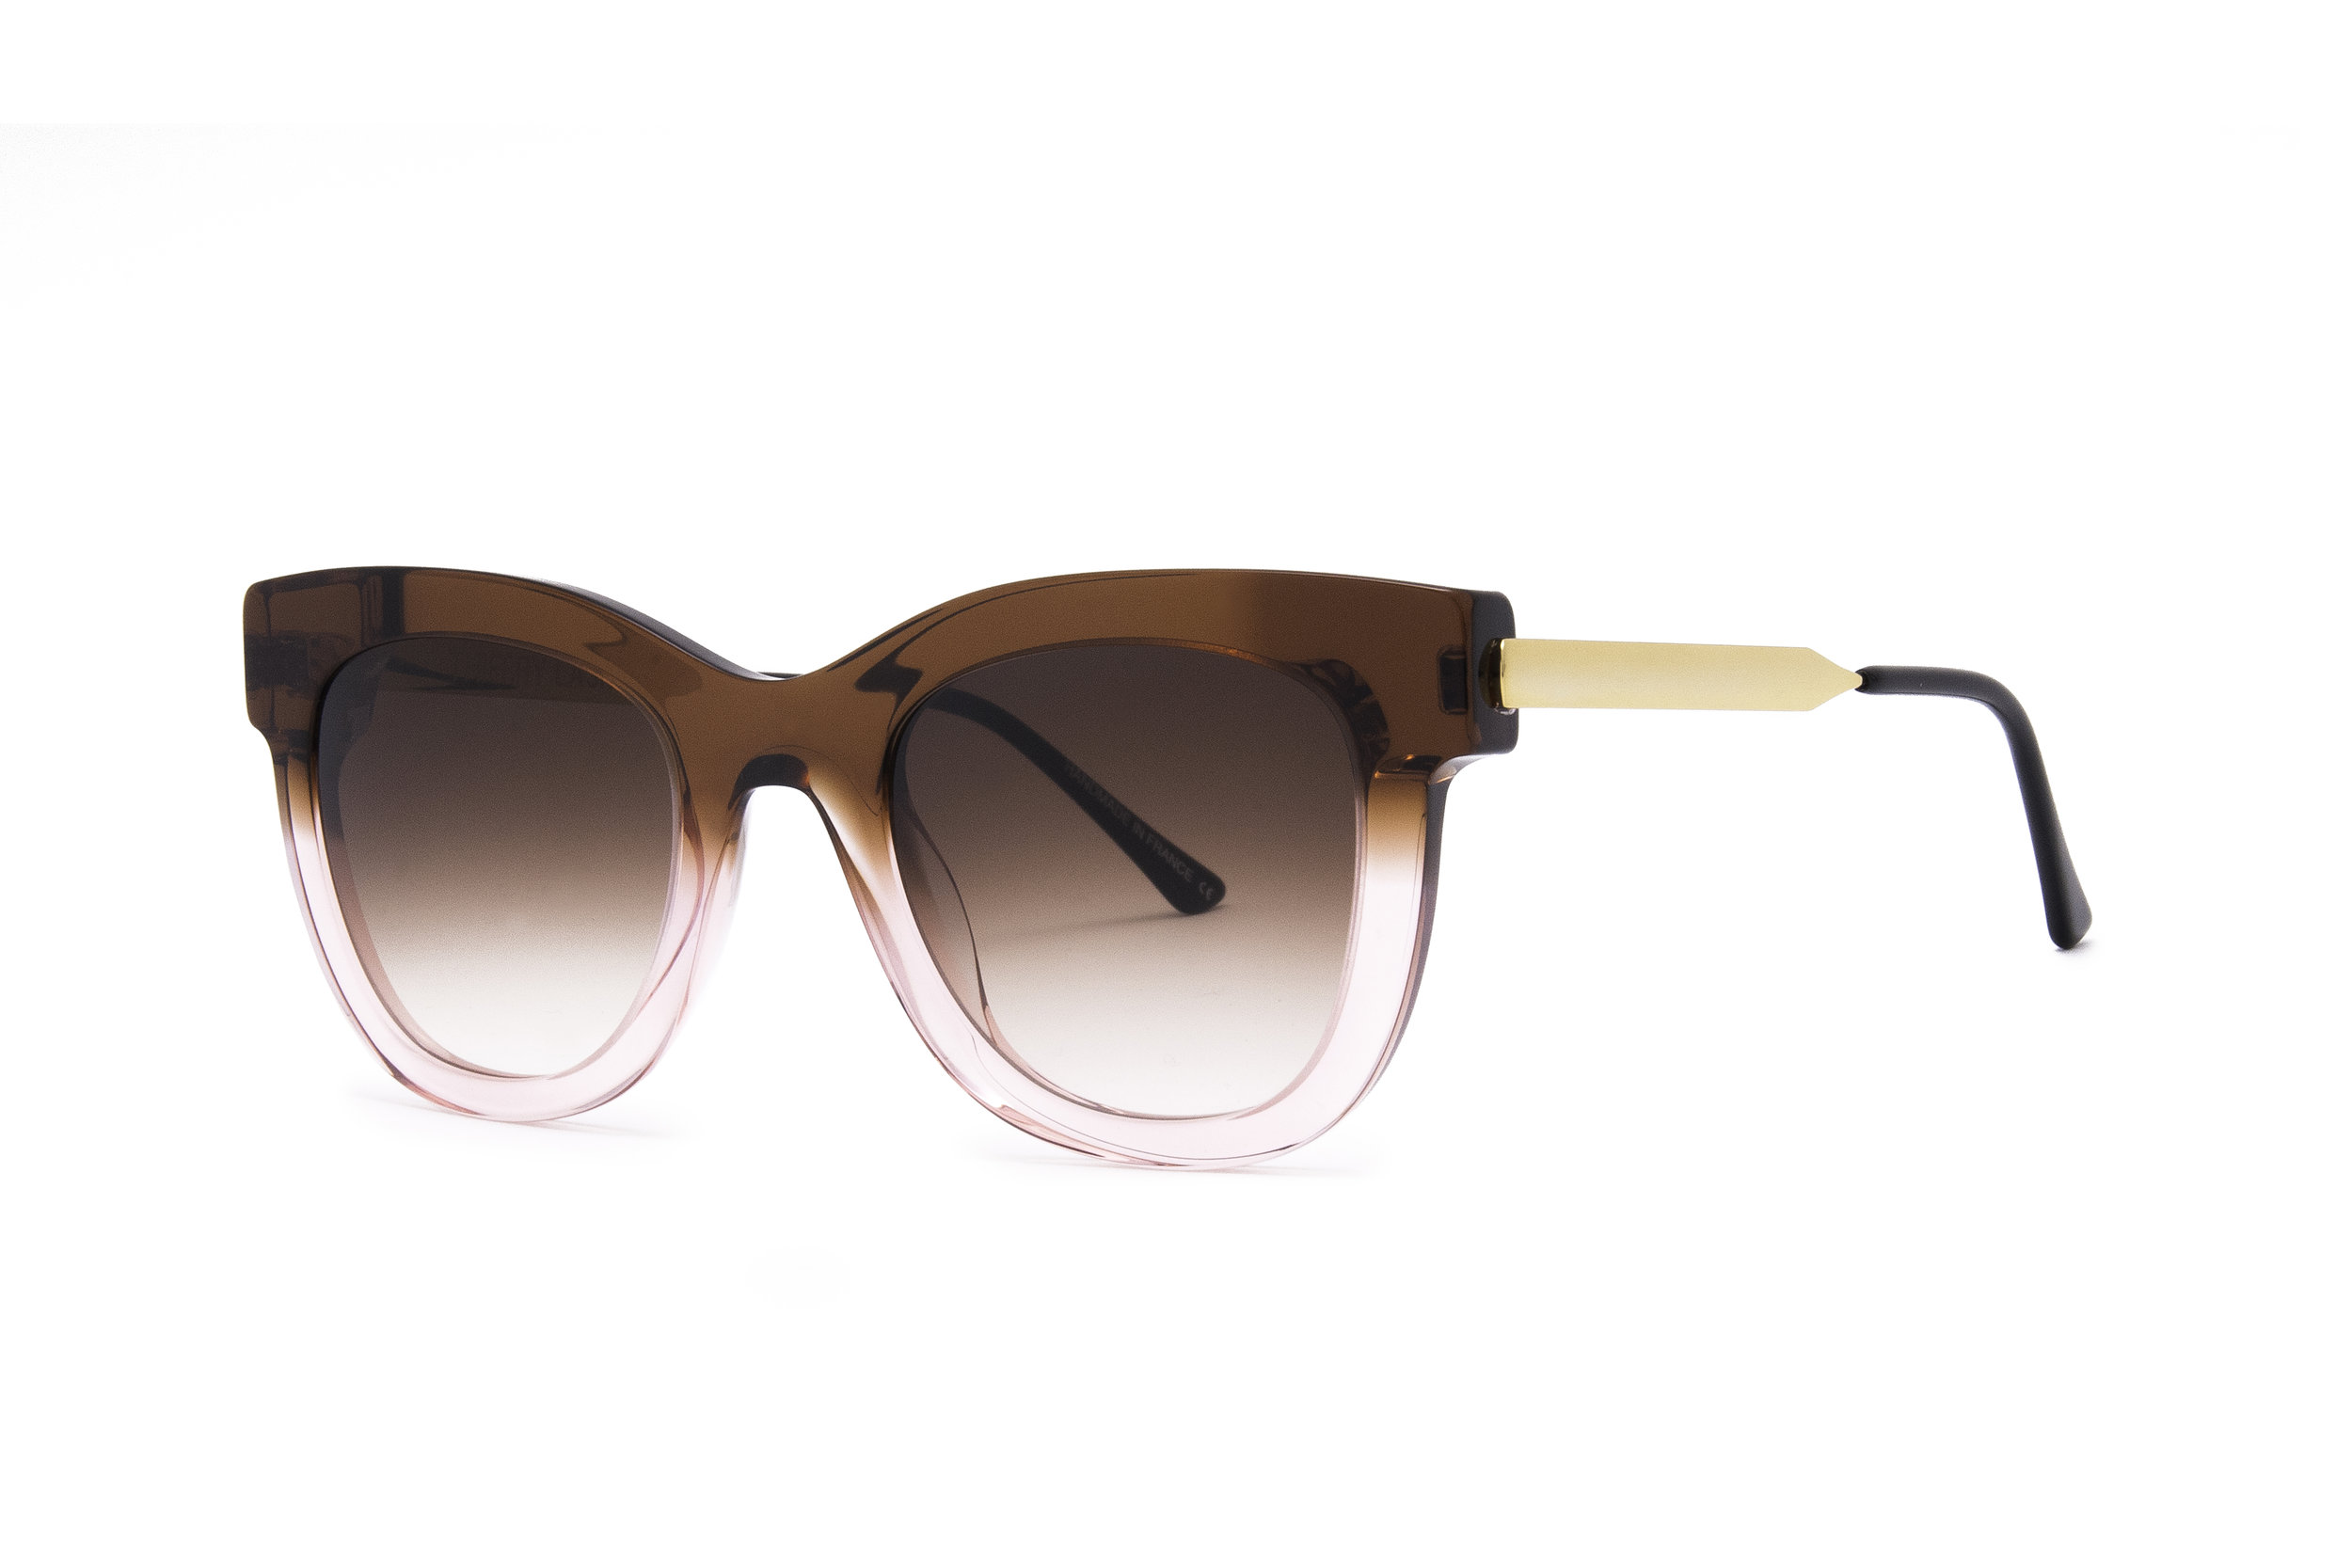 Thierry Lasry Sexxxy Gradient Sunglasses   Brown/Pink